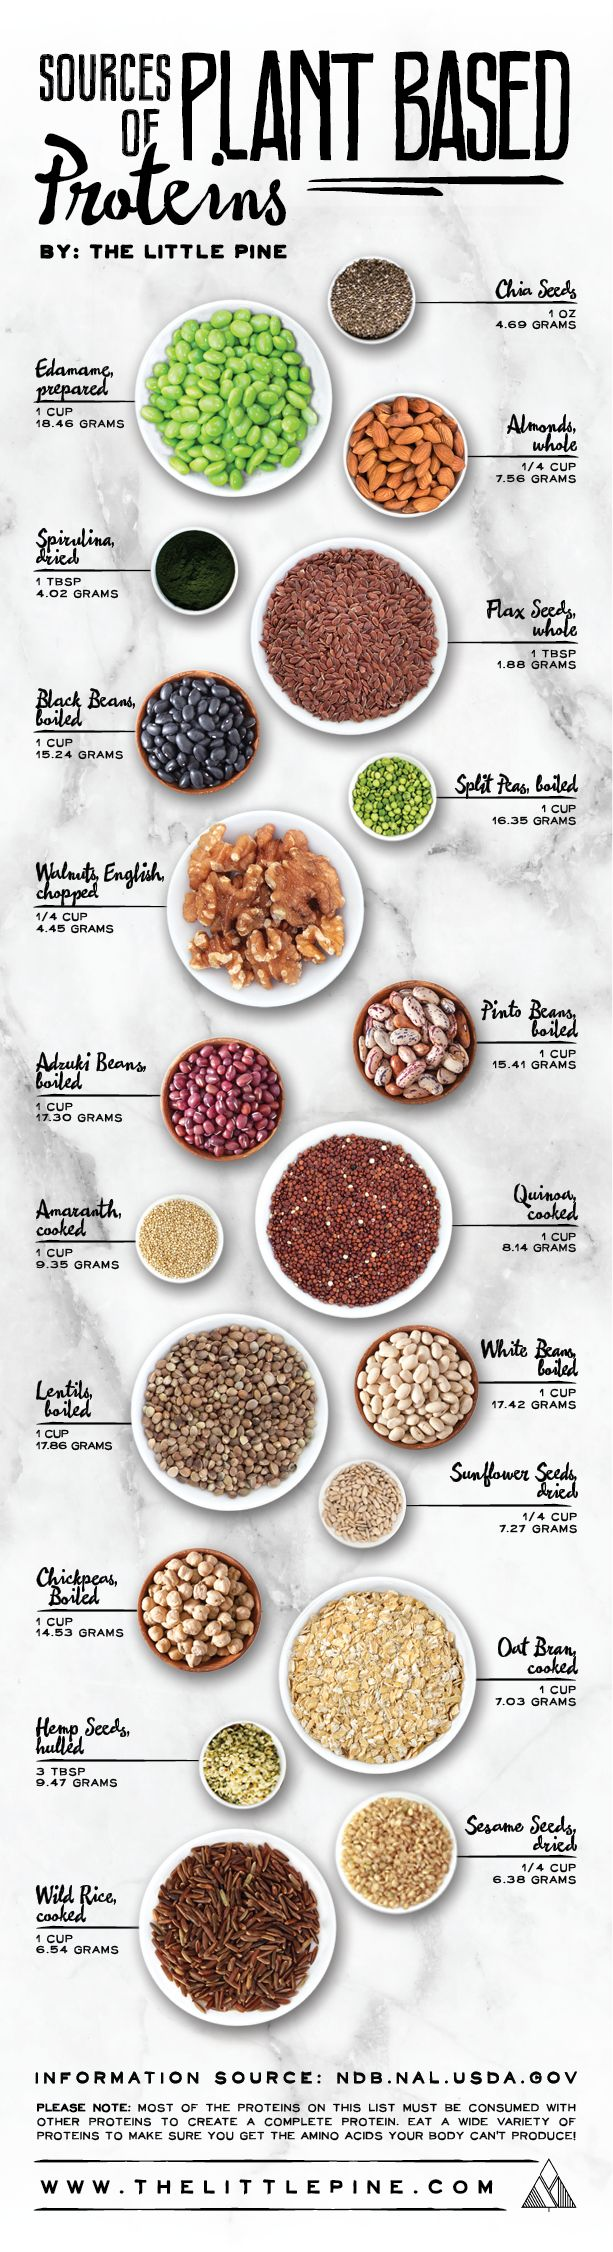 If you are a vegan, you can totally get all your protein needs met by eating a…